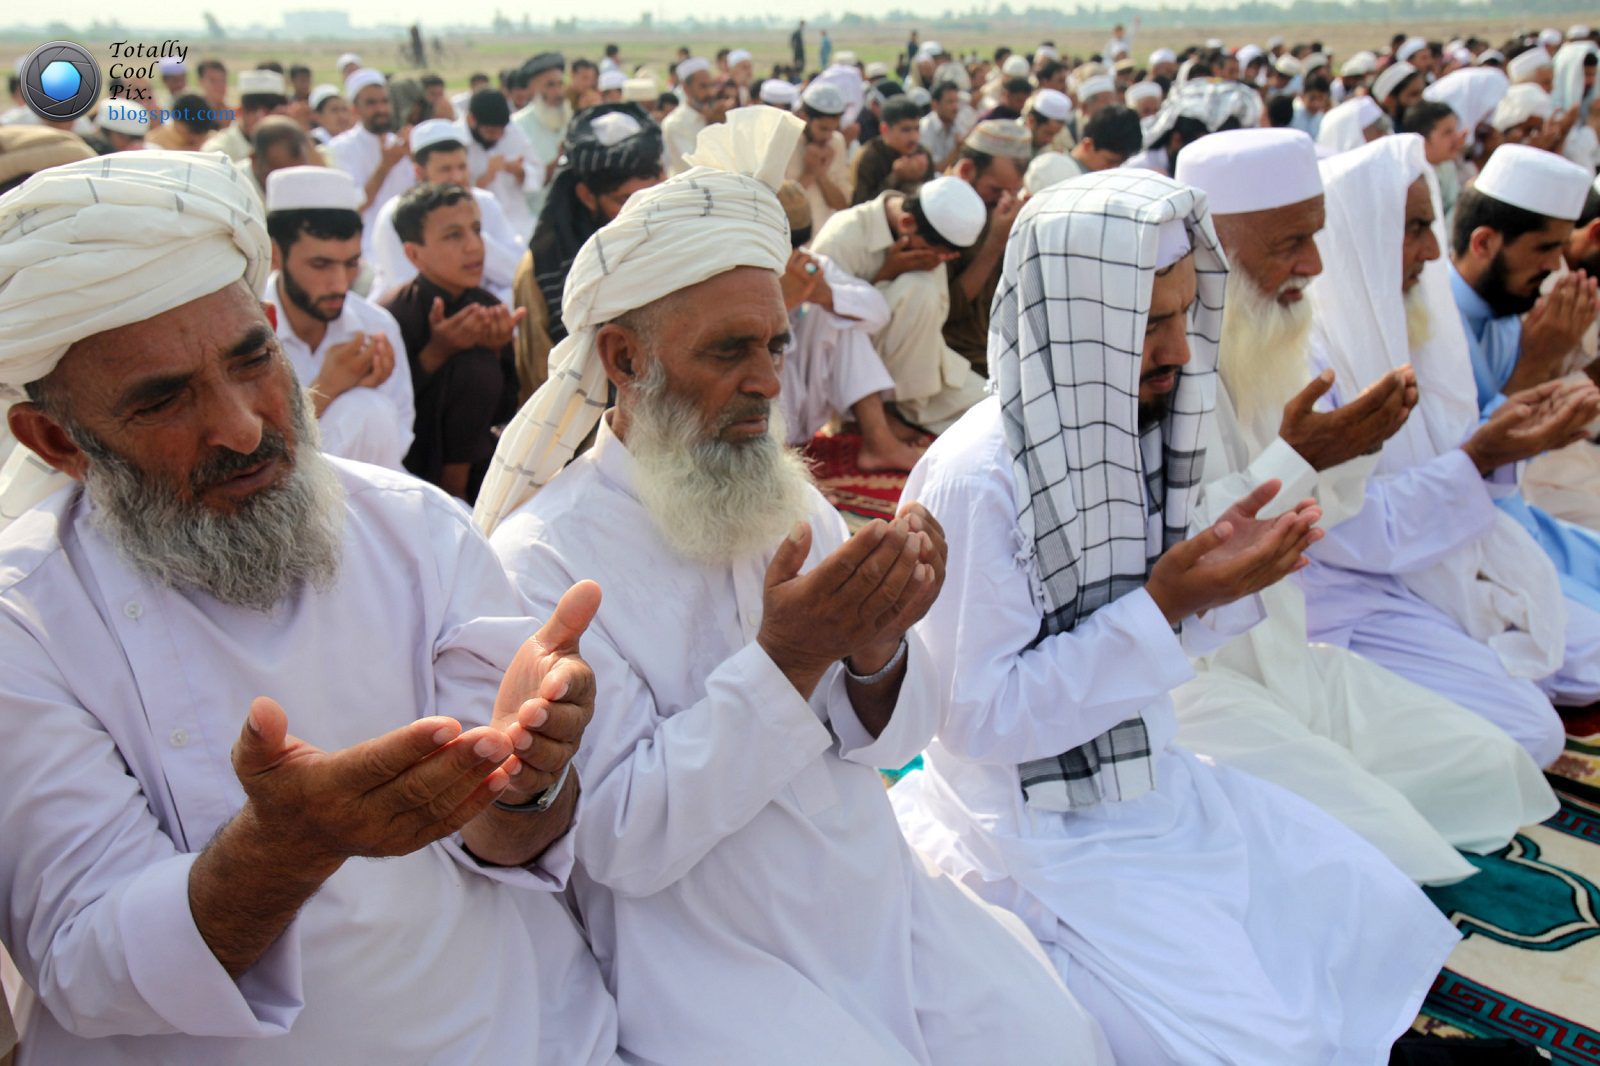 Islamic people praying...